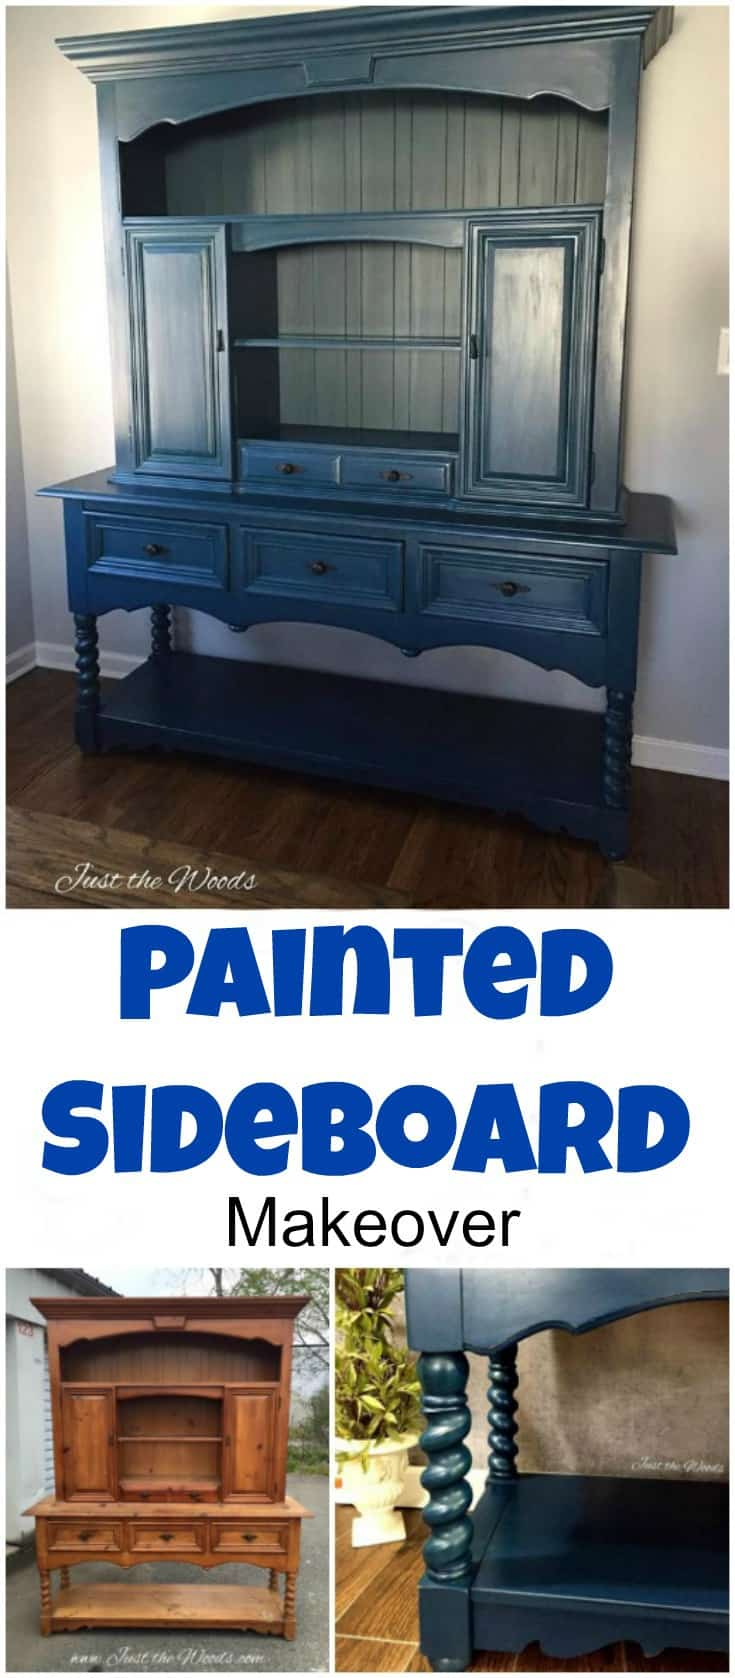 Thomasville sideboard hand painted in an angelic blue with teal highlights and black painted hardware. | painted sideboard | painted hutch | blue painted furniture | painted buffet | painted sideboards | painted sideboard and buffets |